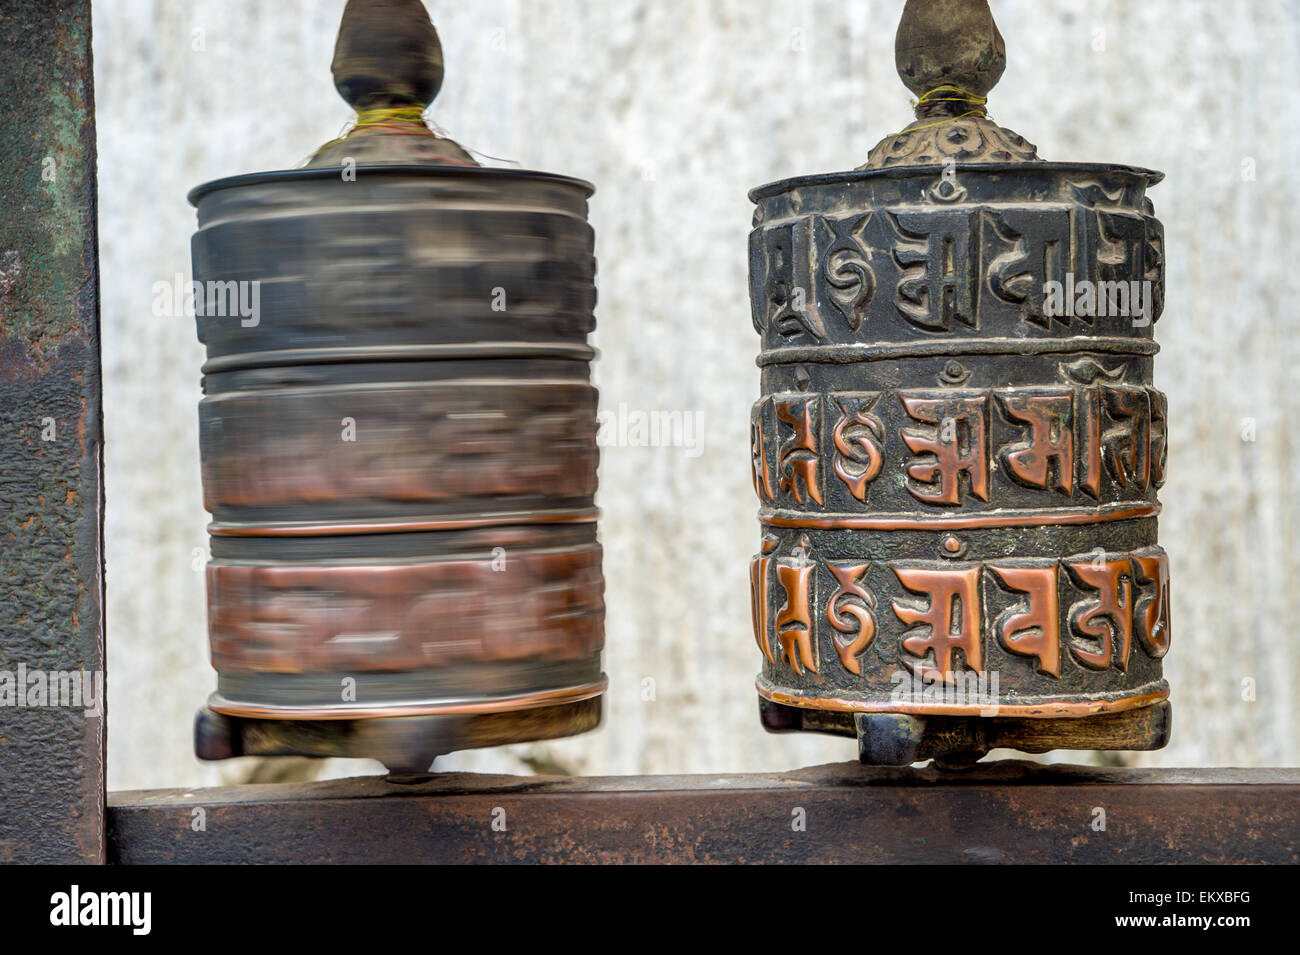 Two prayer wheels at Swayambhunath Monkey temple in Kathmandu, Nepal. One is still, the other one is turning (blur - Stock Image